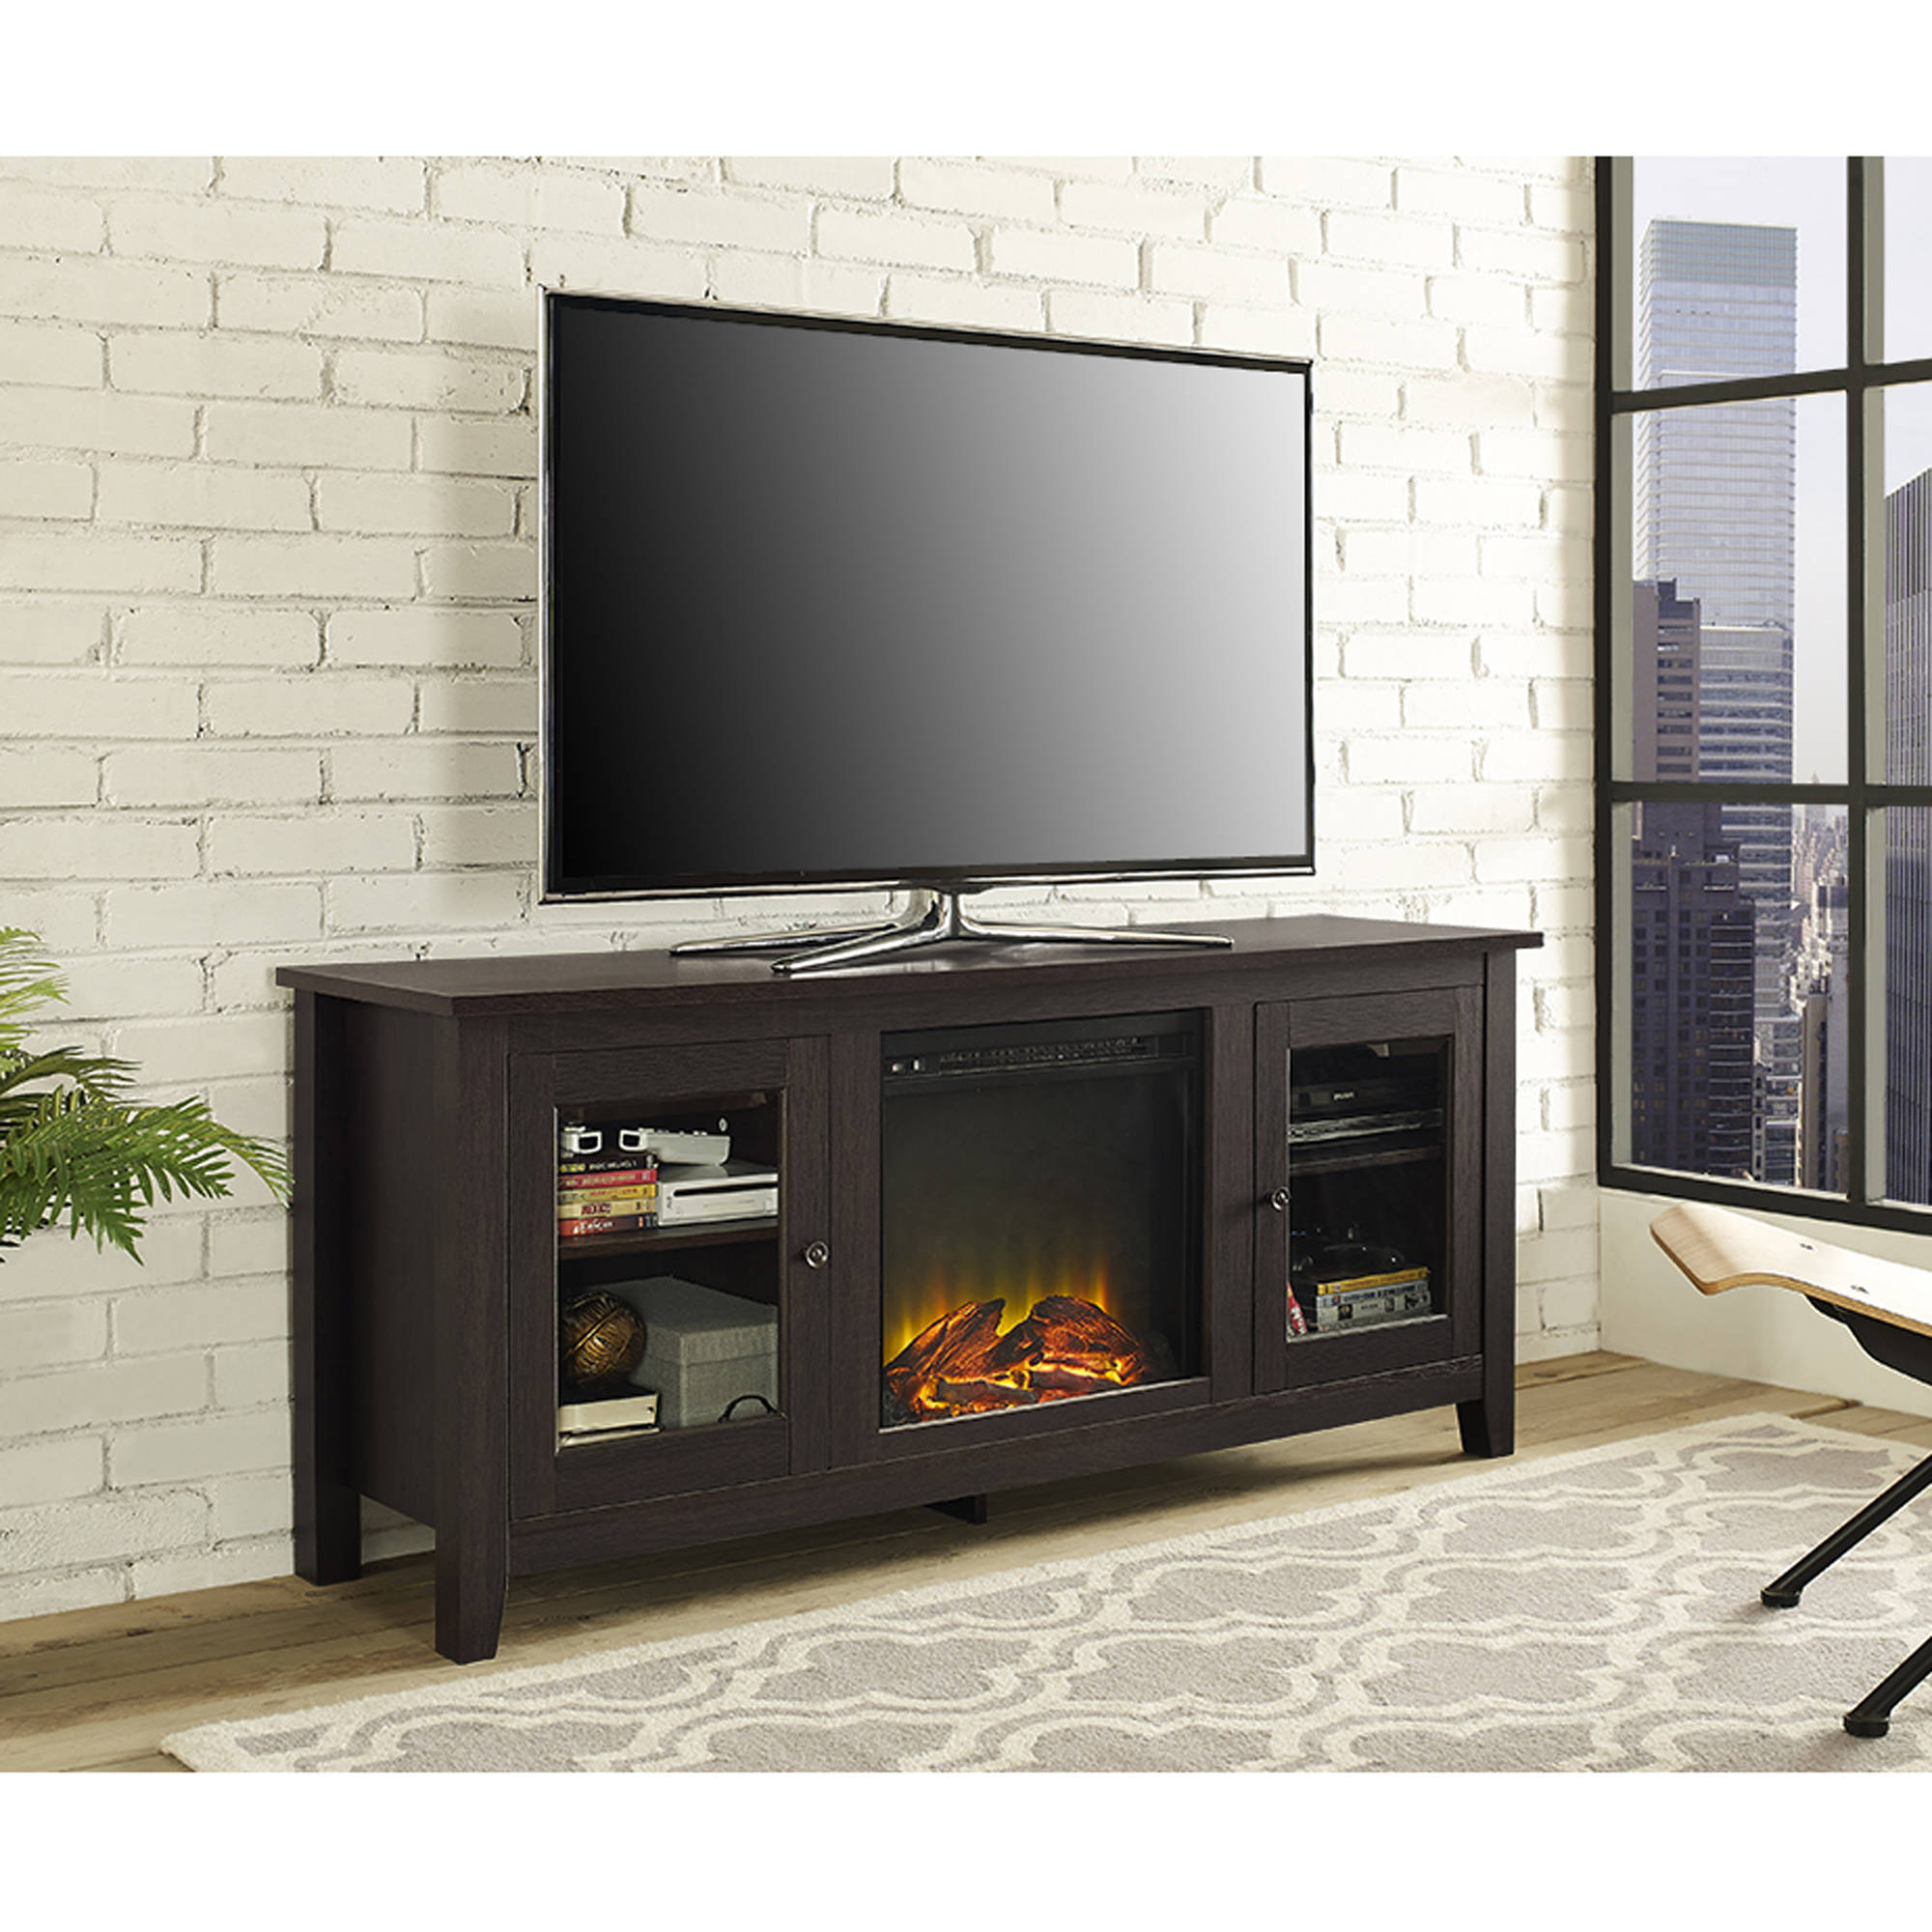 Most Current Tv Stands & Entertainment Centers – Walmart With Regard To Modern Tv Cabinets For Flat Screens (View 12 of 20)